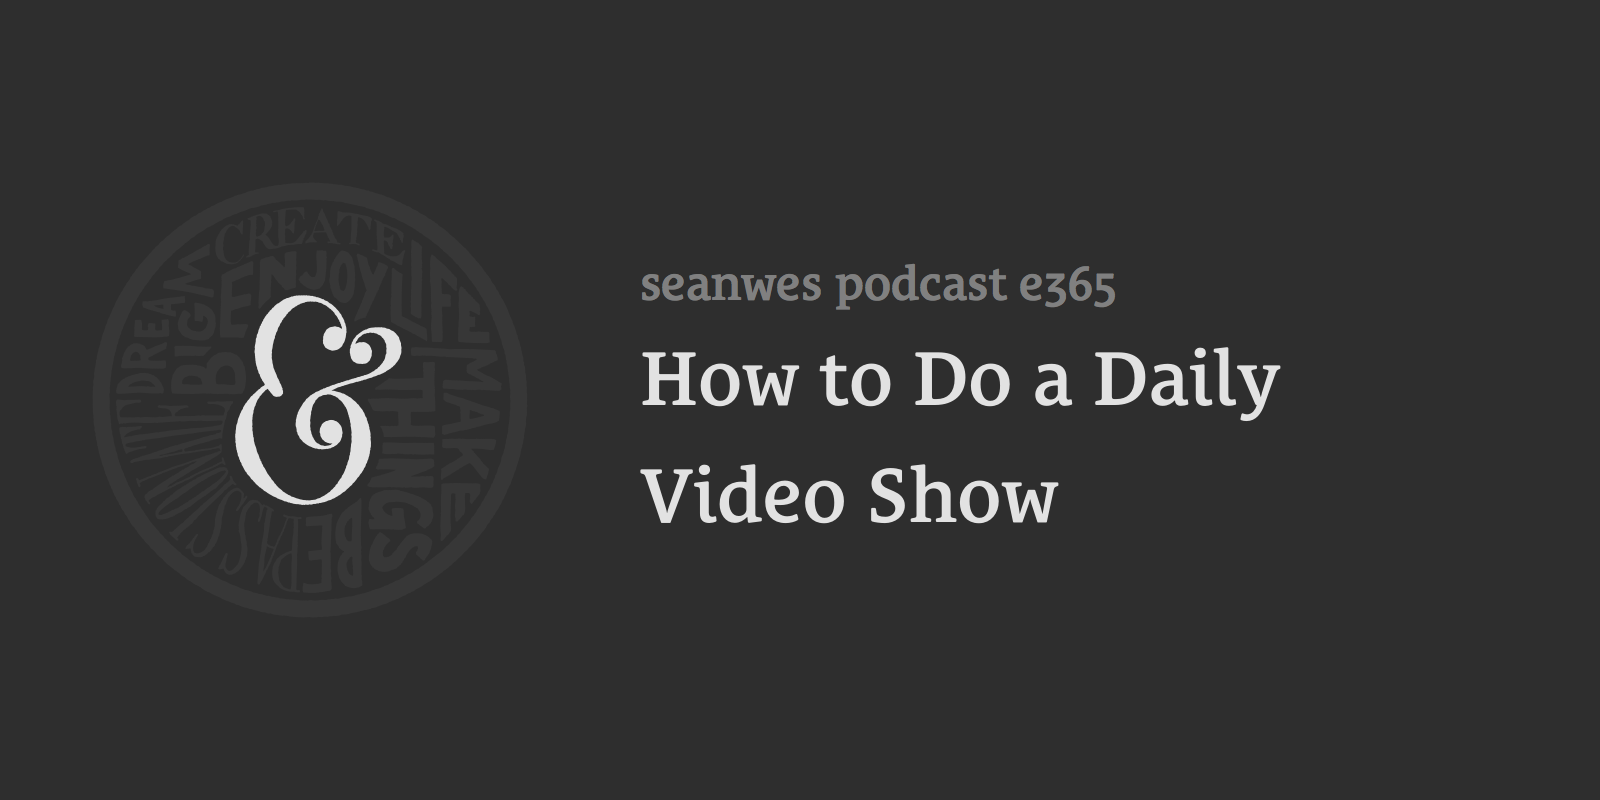 How to Do a Daily Video Show (seanwes tv)